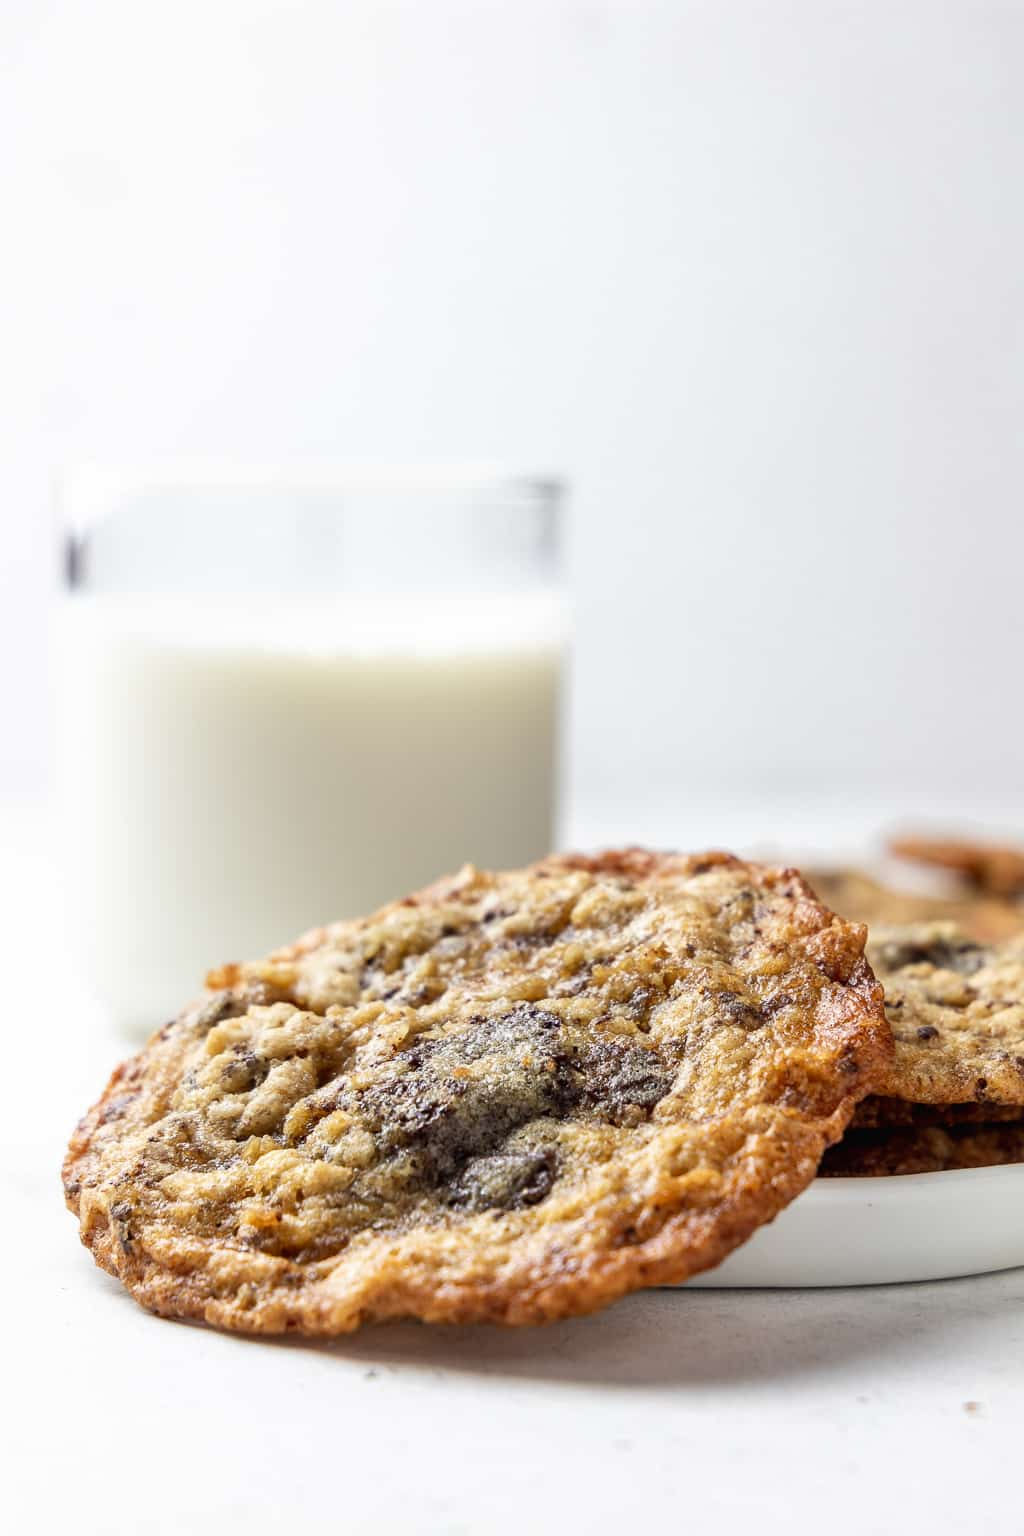 oatmeal chocolate chunk cookies with a glass of milk